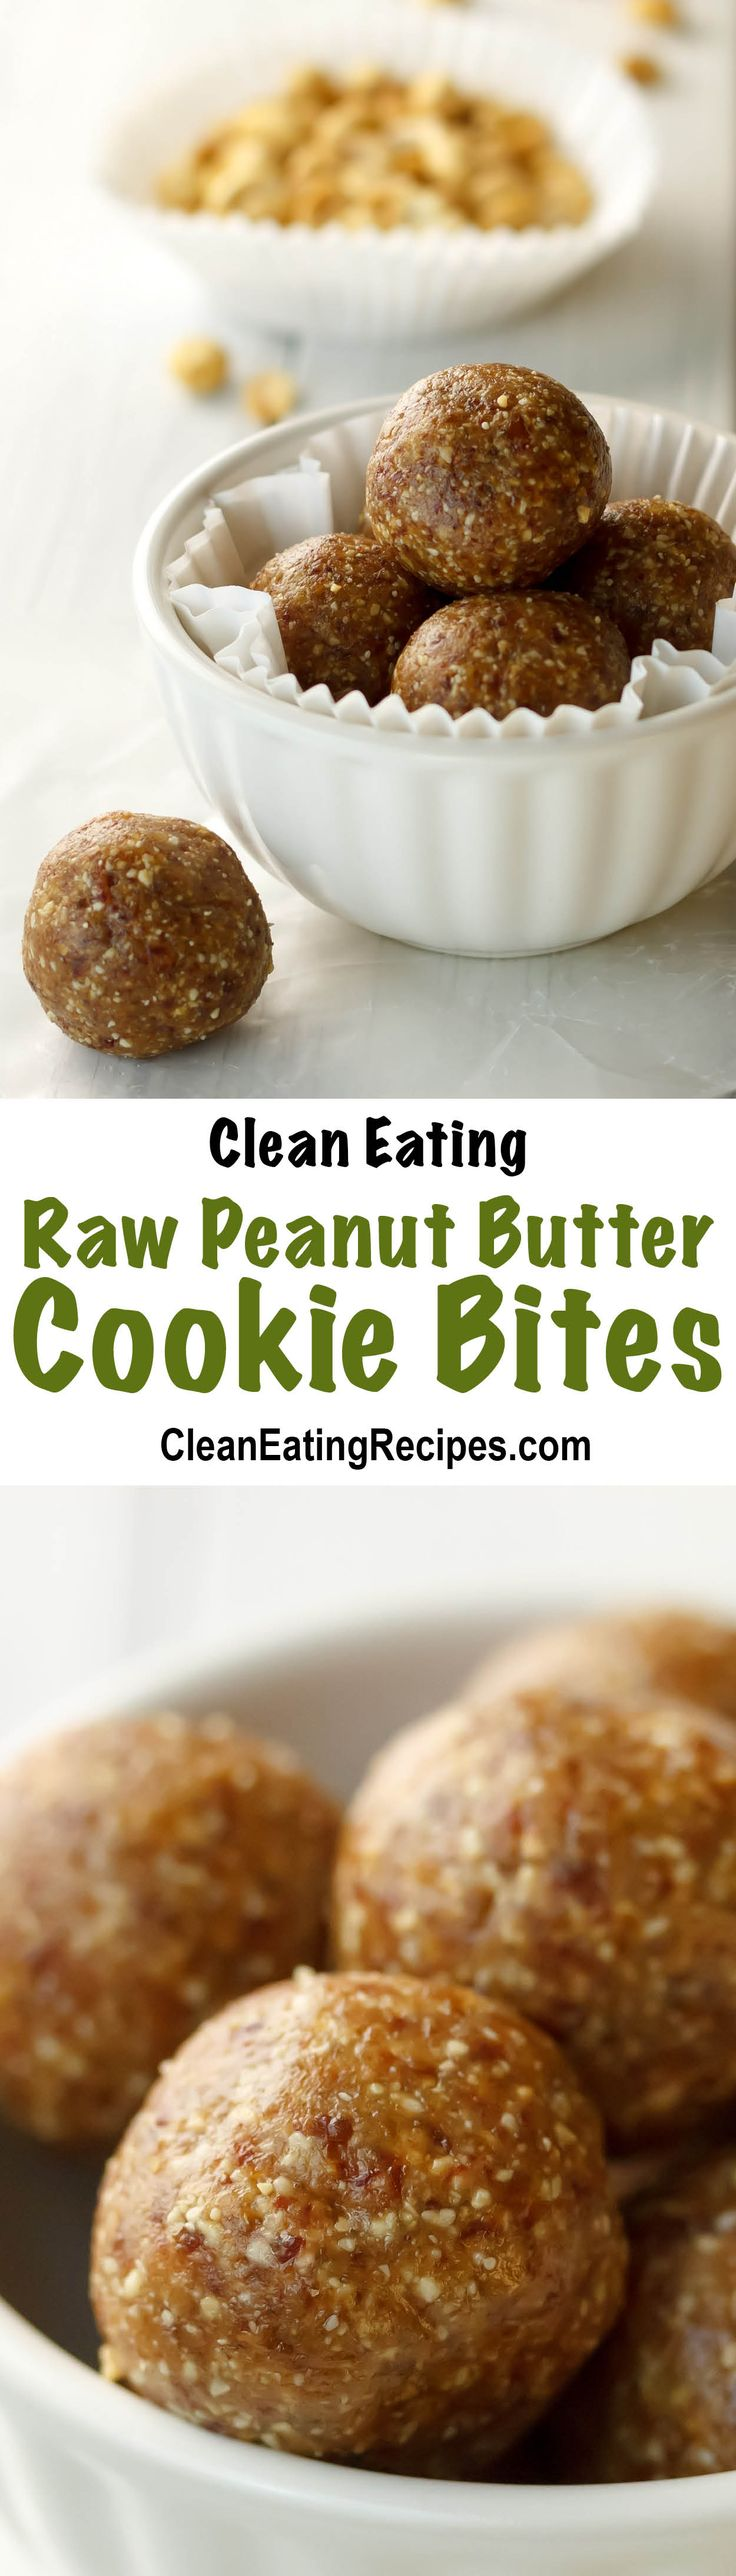 Clean eating raw peanut butter cookie bites recipe for Quick easy healthy dessert recipes